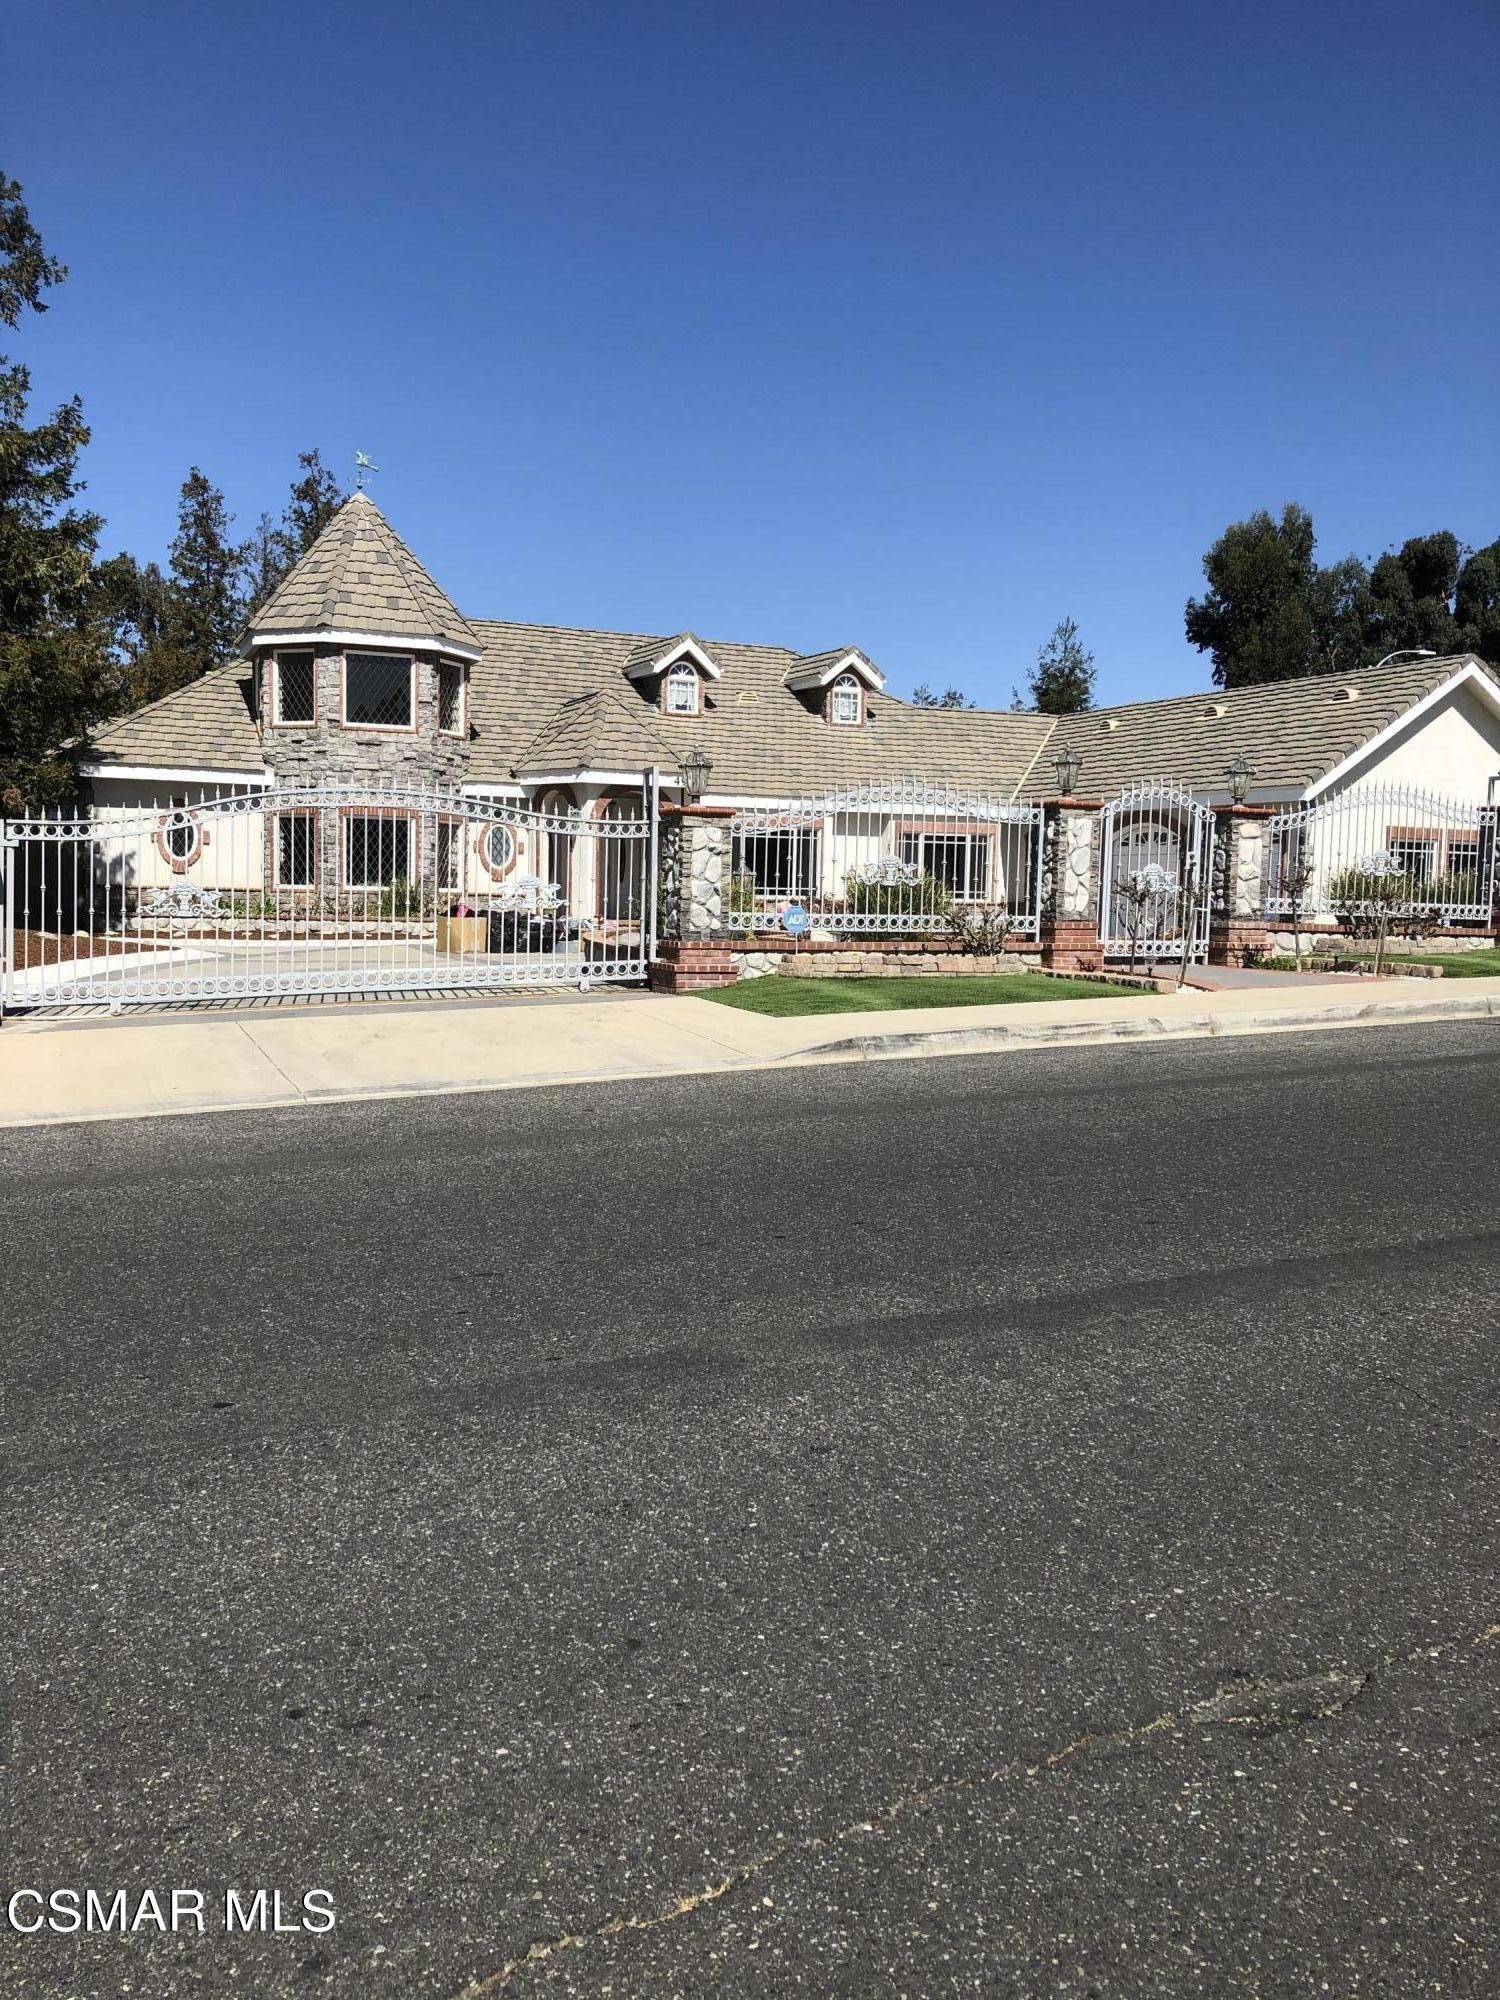 Photo of 491 Highland Road, Simi Valley, CA 93065